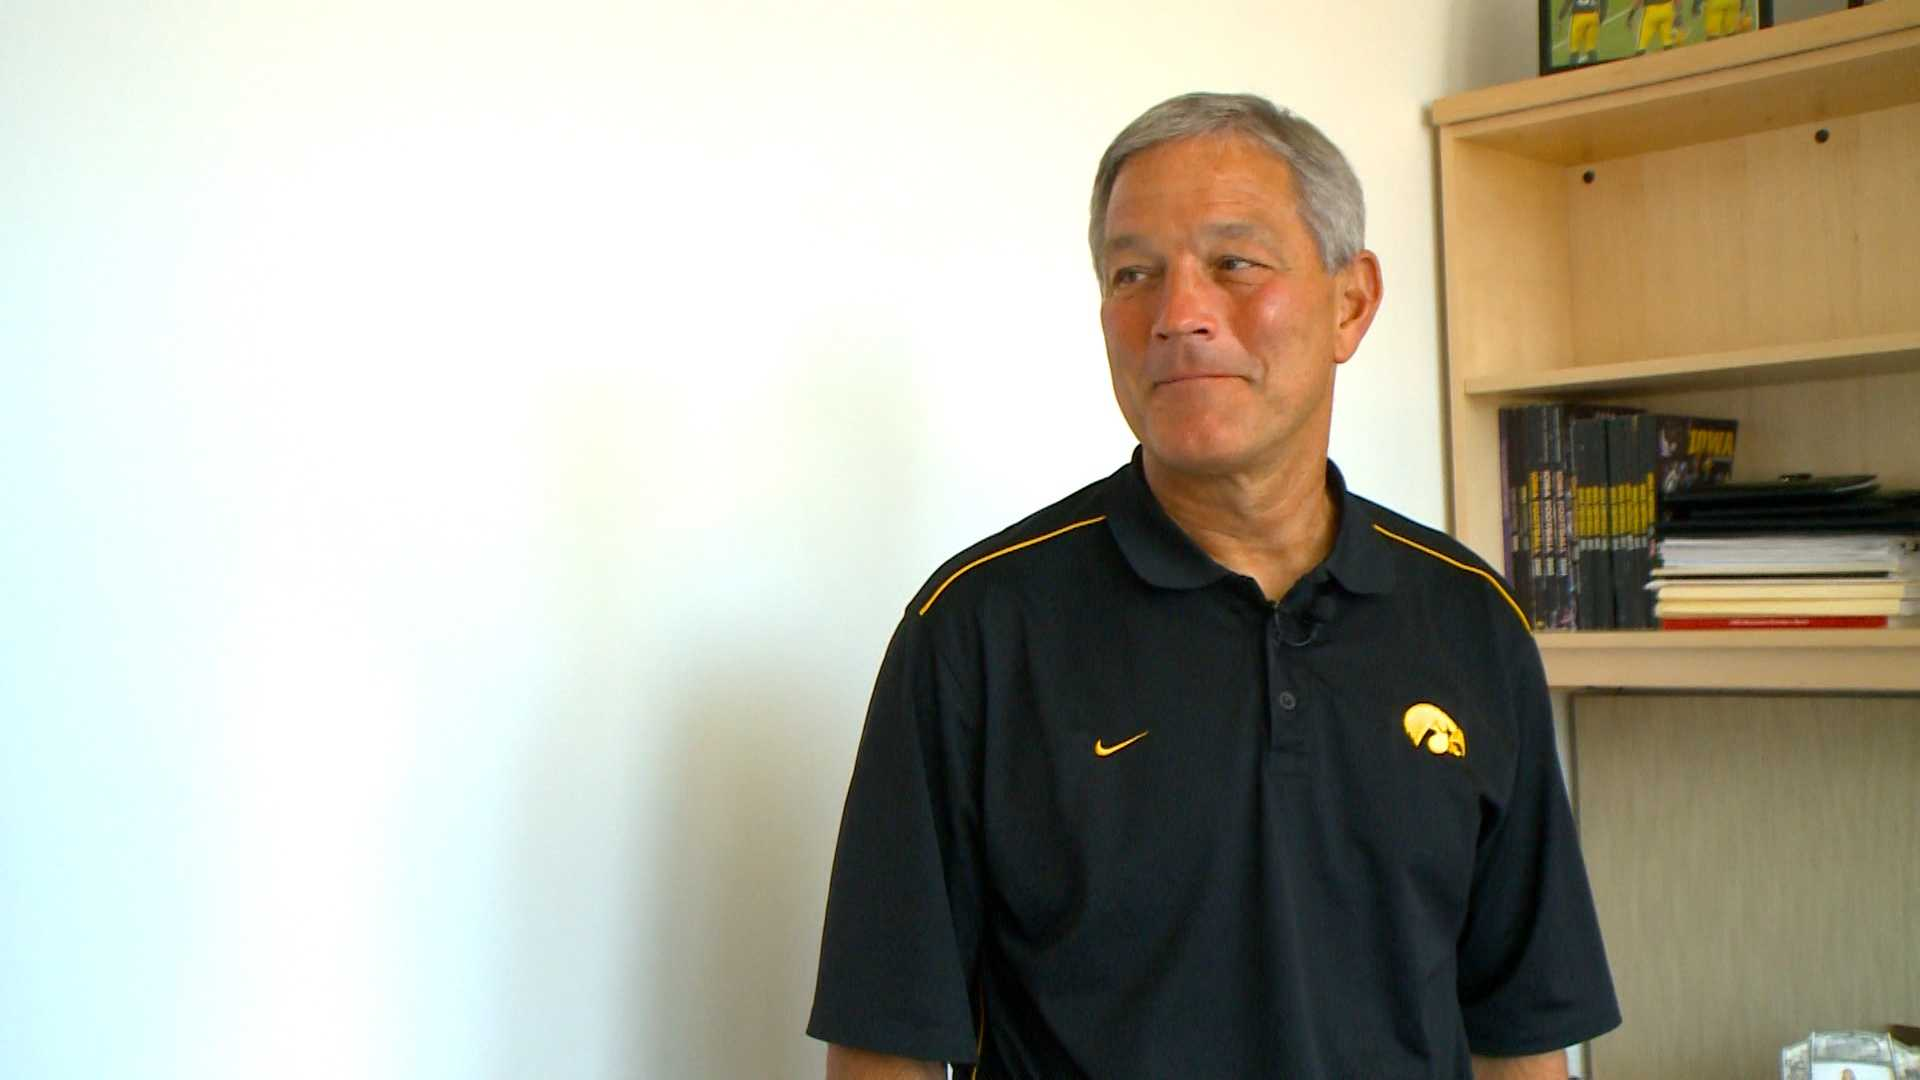 Kirk Ferentz pauses in his new office in Iowa City